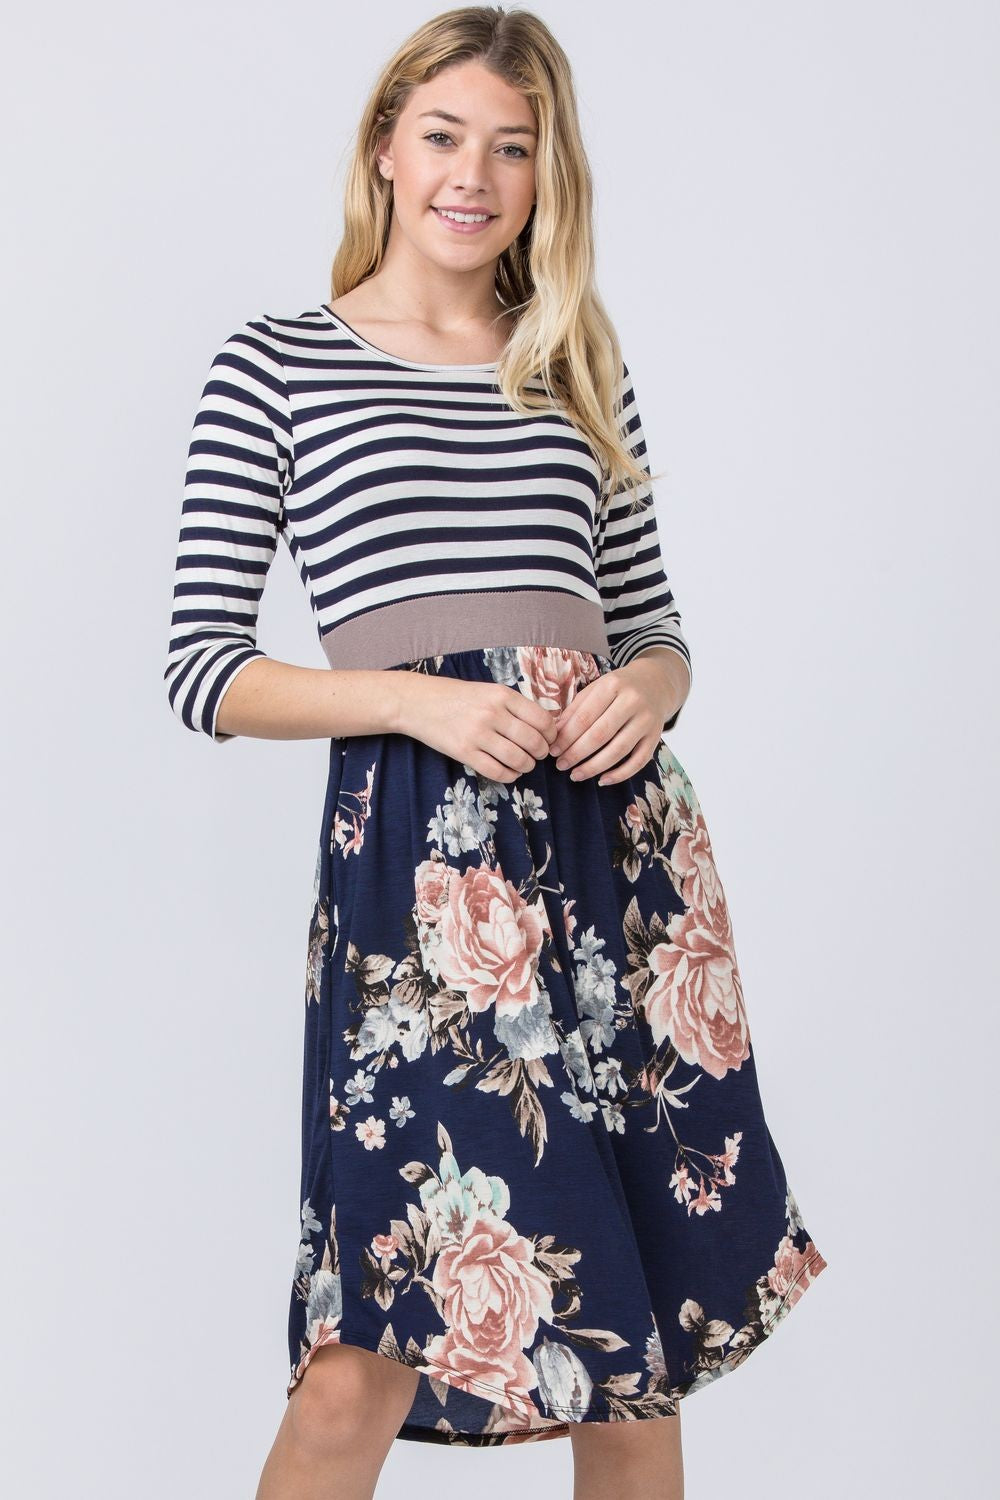 Stripe Navy Floral Curved Hem Midi Dress with Mocha Band